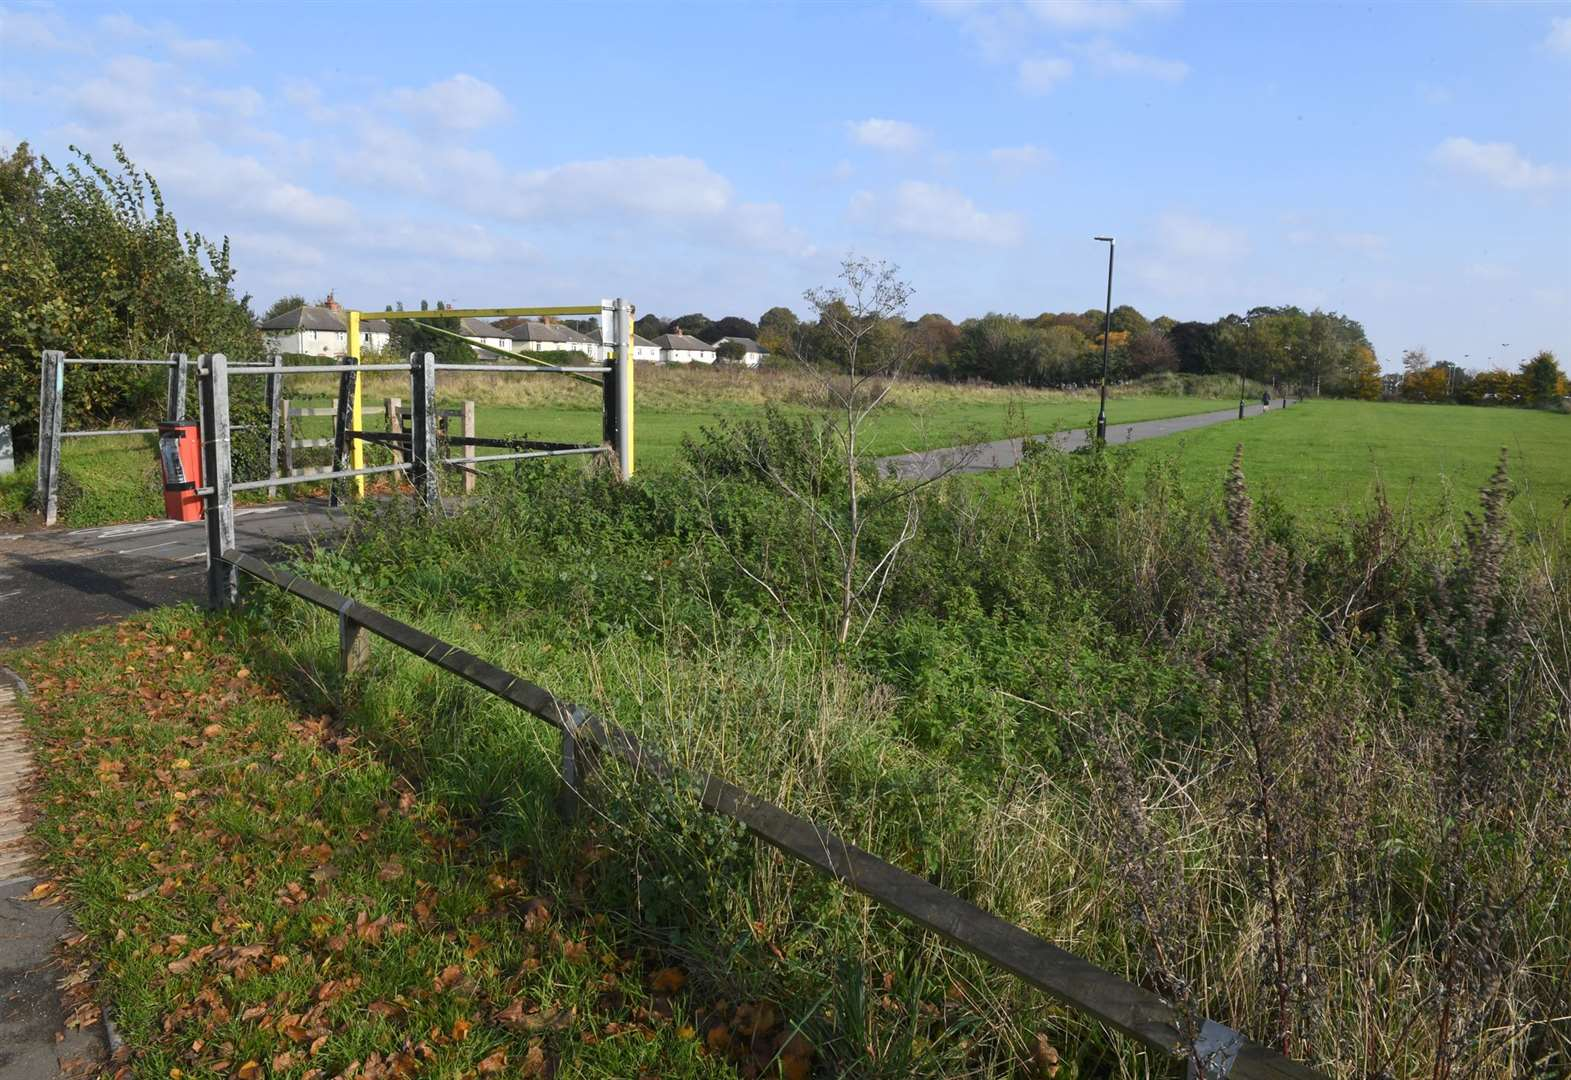 Council rejects plan for 87 new homes